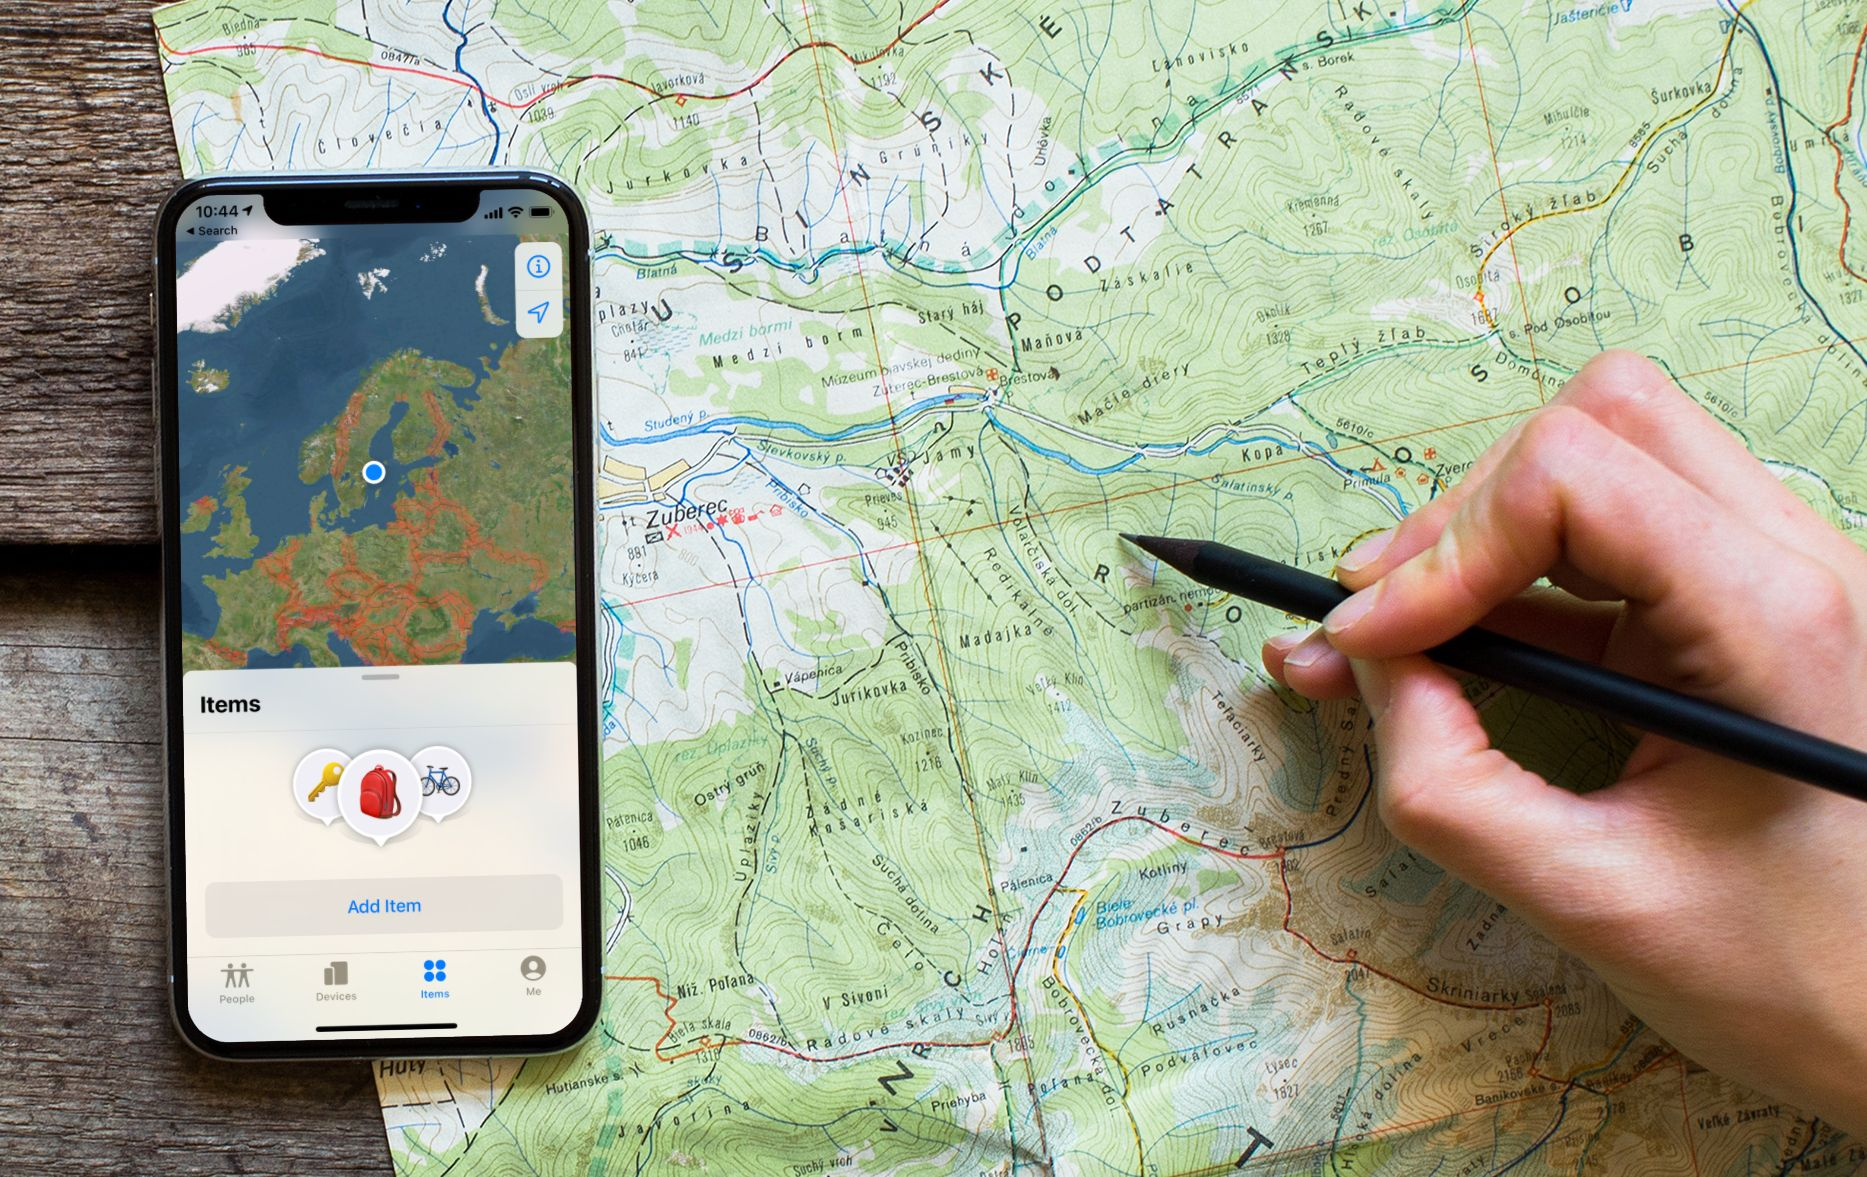 """Picture of iPhone with the Find app and the menu item """"Items"""" along with a map. The phone is on a table with a physical map and a hand that marks a position on a map with a pen."""